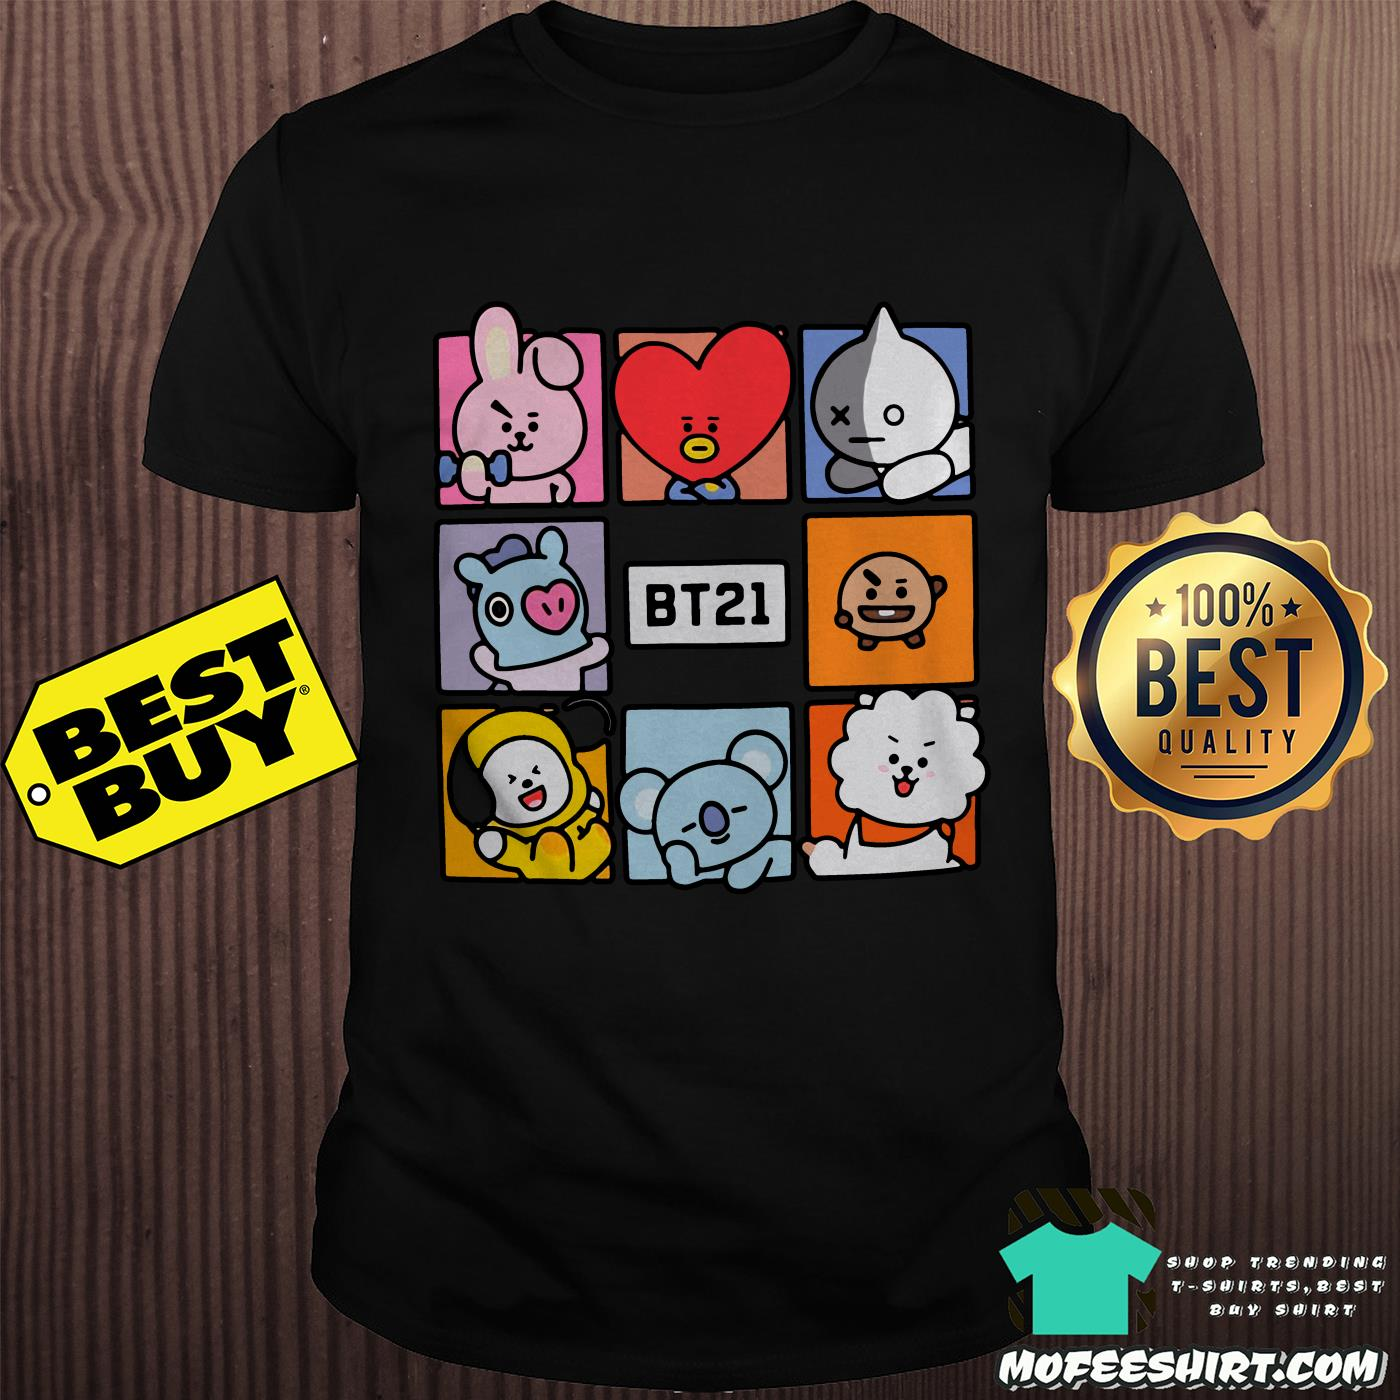 Hot topic BT21 squares shirt